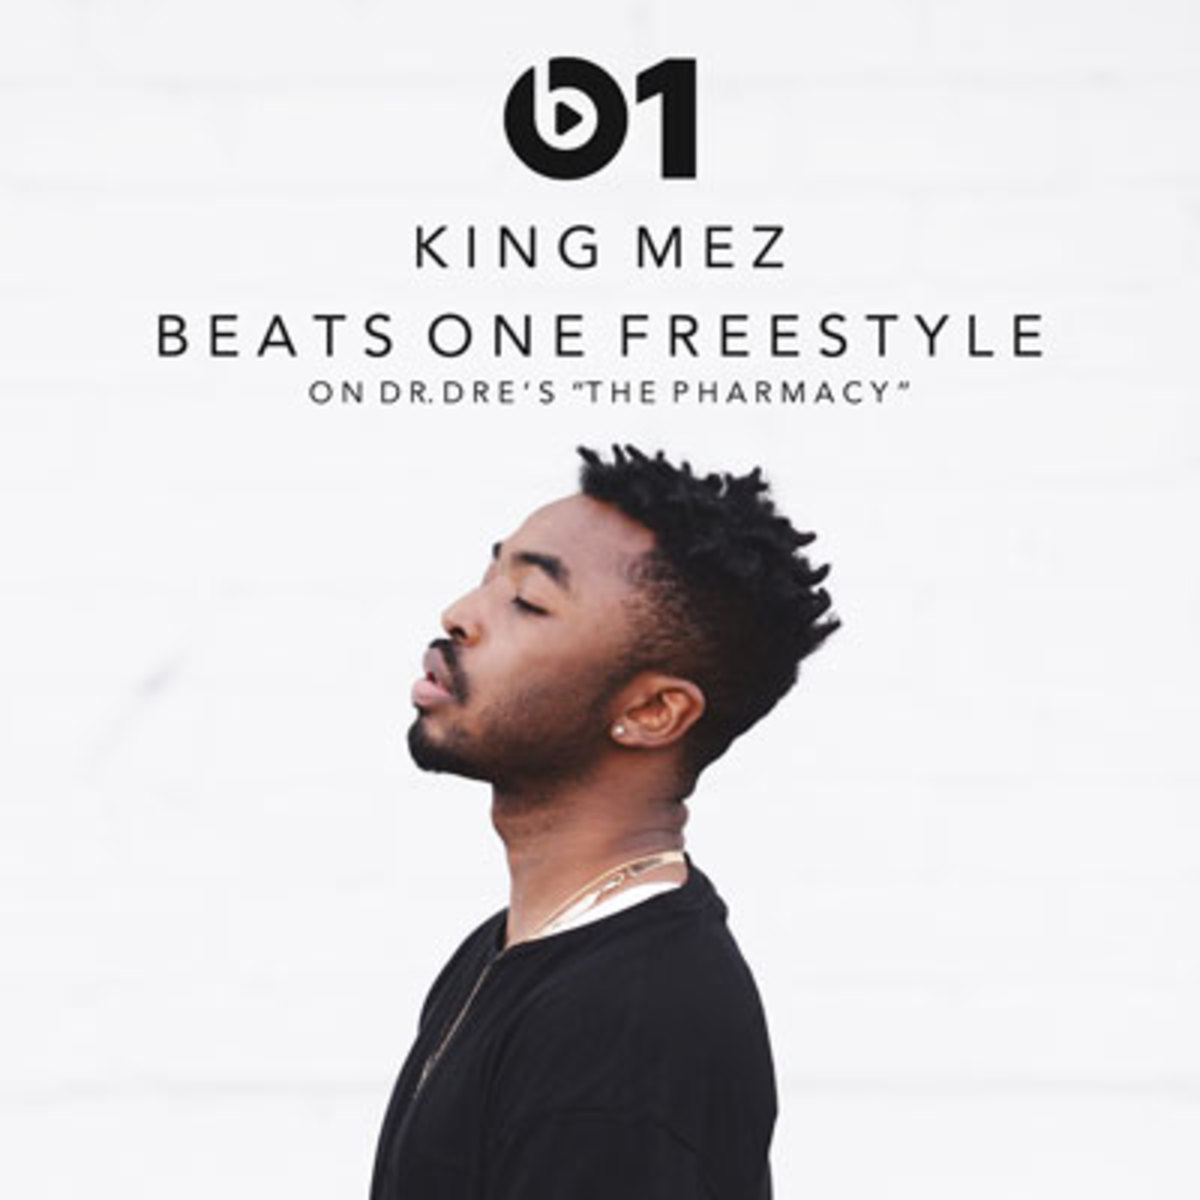 king-mez-beats-one-freestyle.jpg